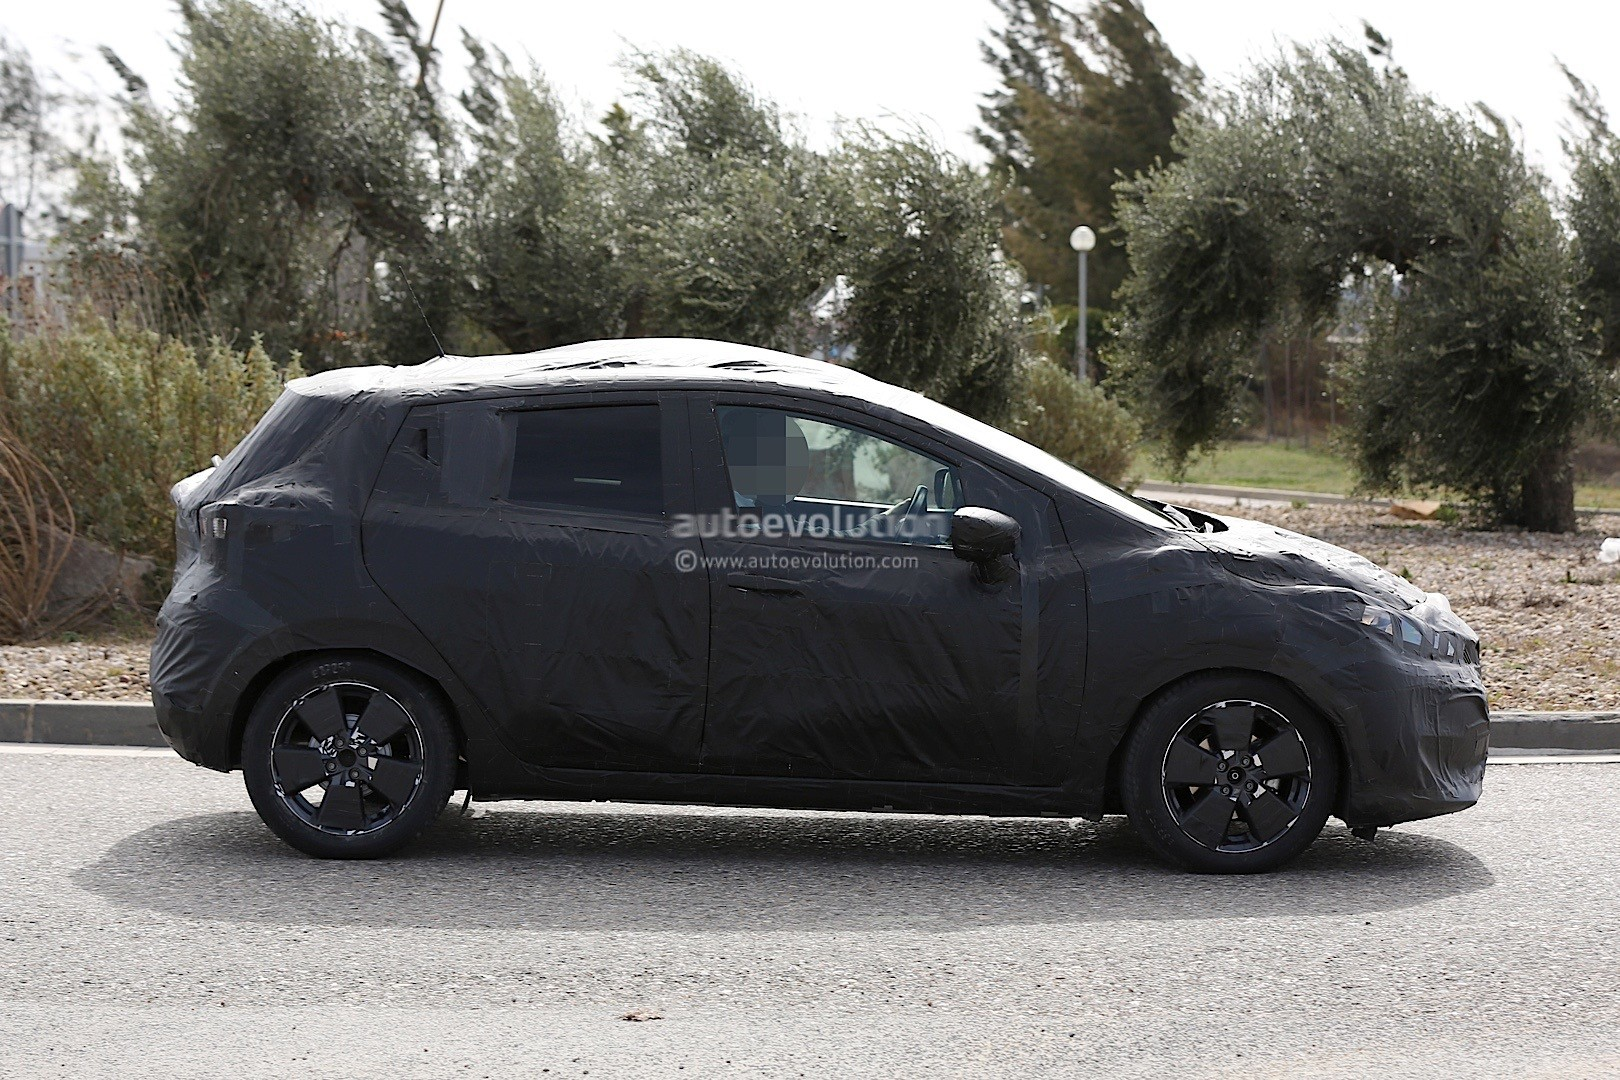 2016 - [Nissan] Micra - Page 4 2017-nissan-micra-successor-spied-has-sway-concept-styling-cues_13